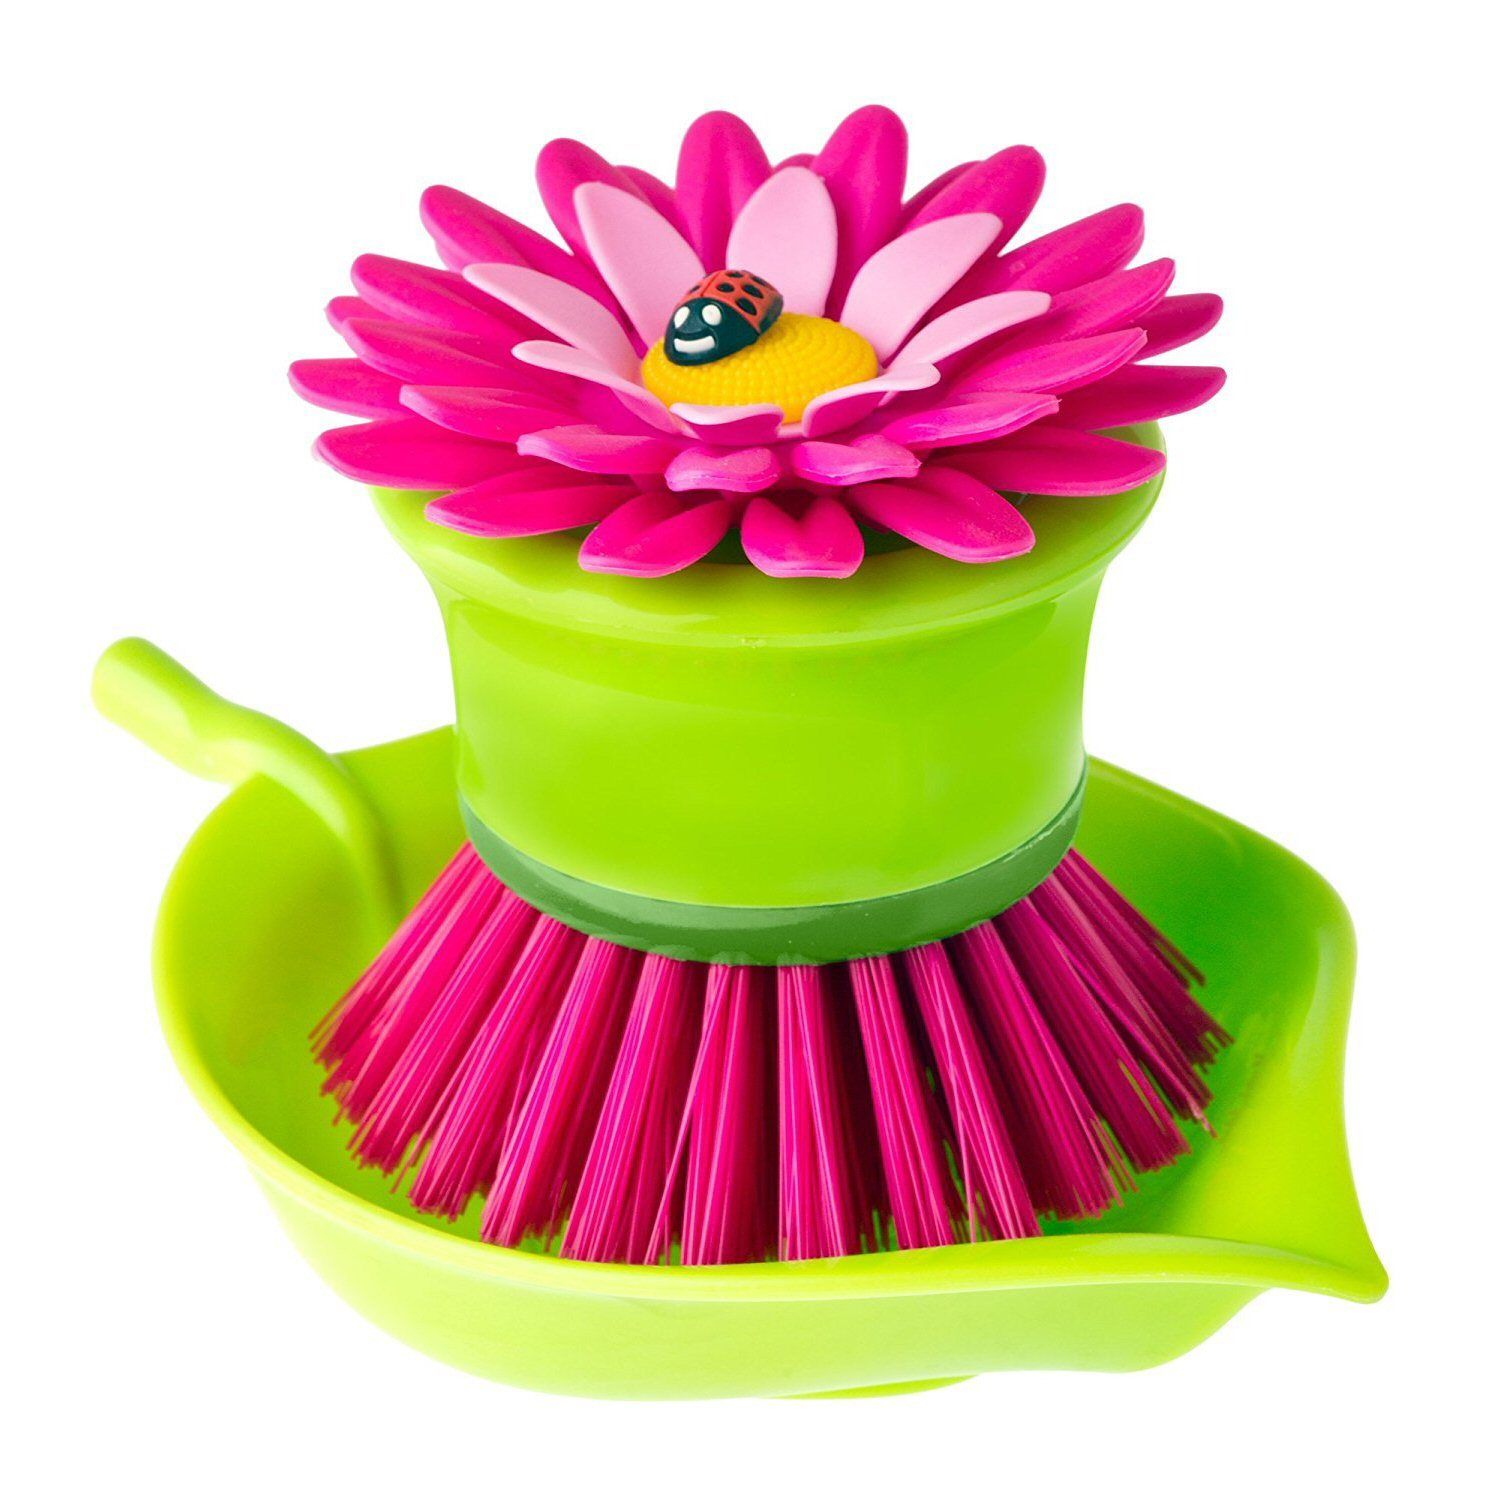 Vigar Flower Power Dish Washing Palm Brush with Tray